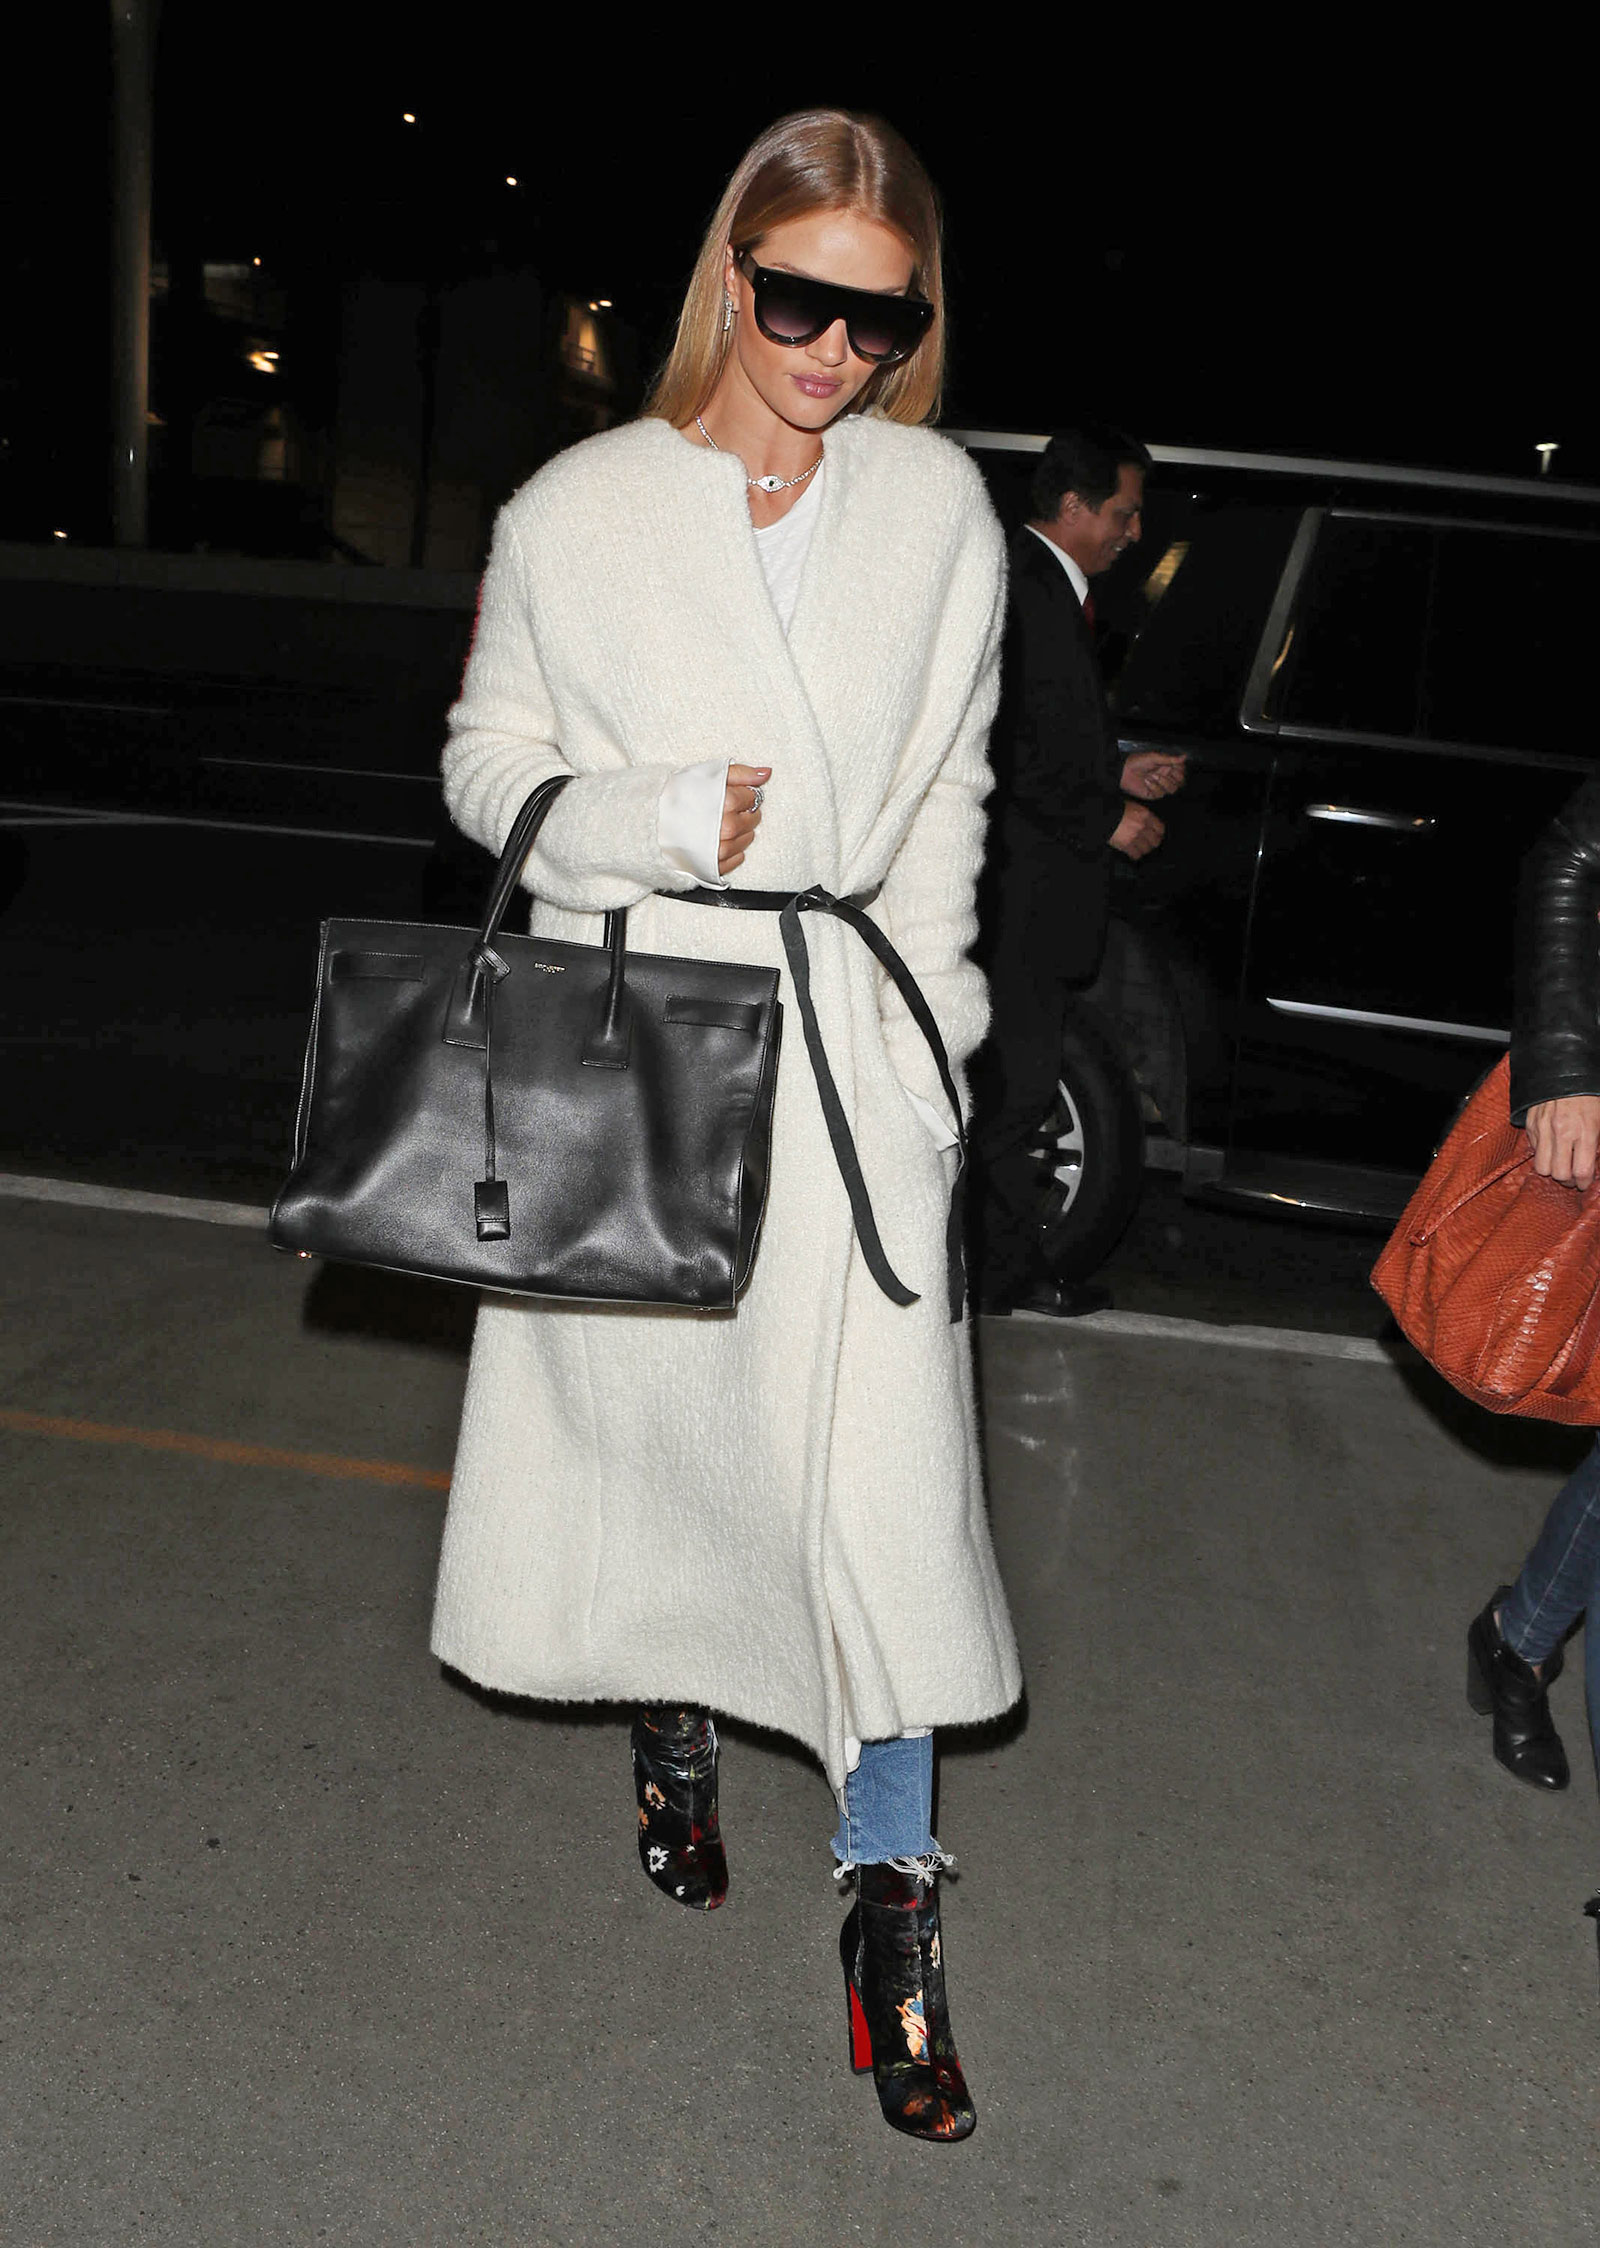 abdaf287c11 Rosie Huntington Whiteley s White Wrap Coat and Floral Ankle.